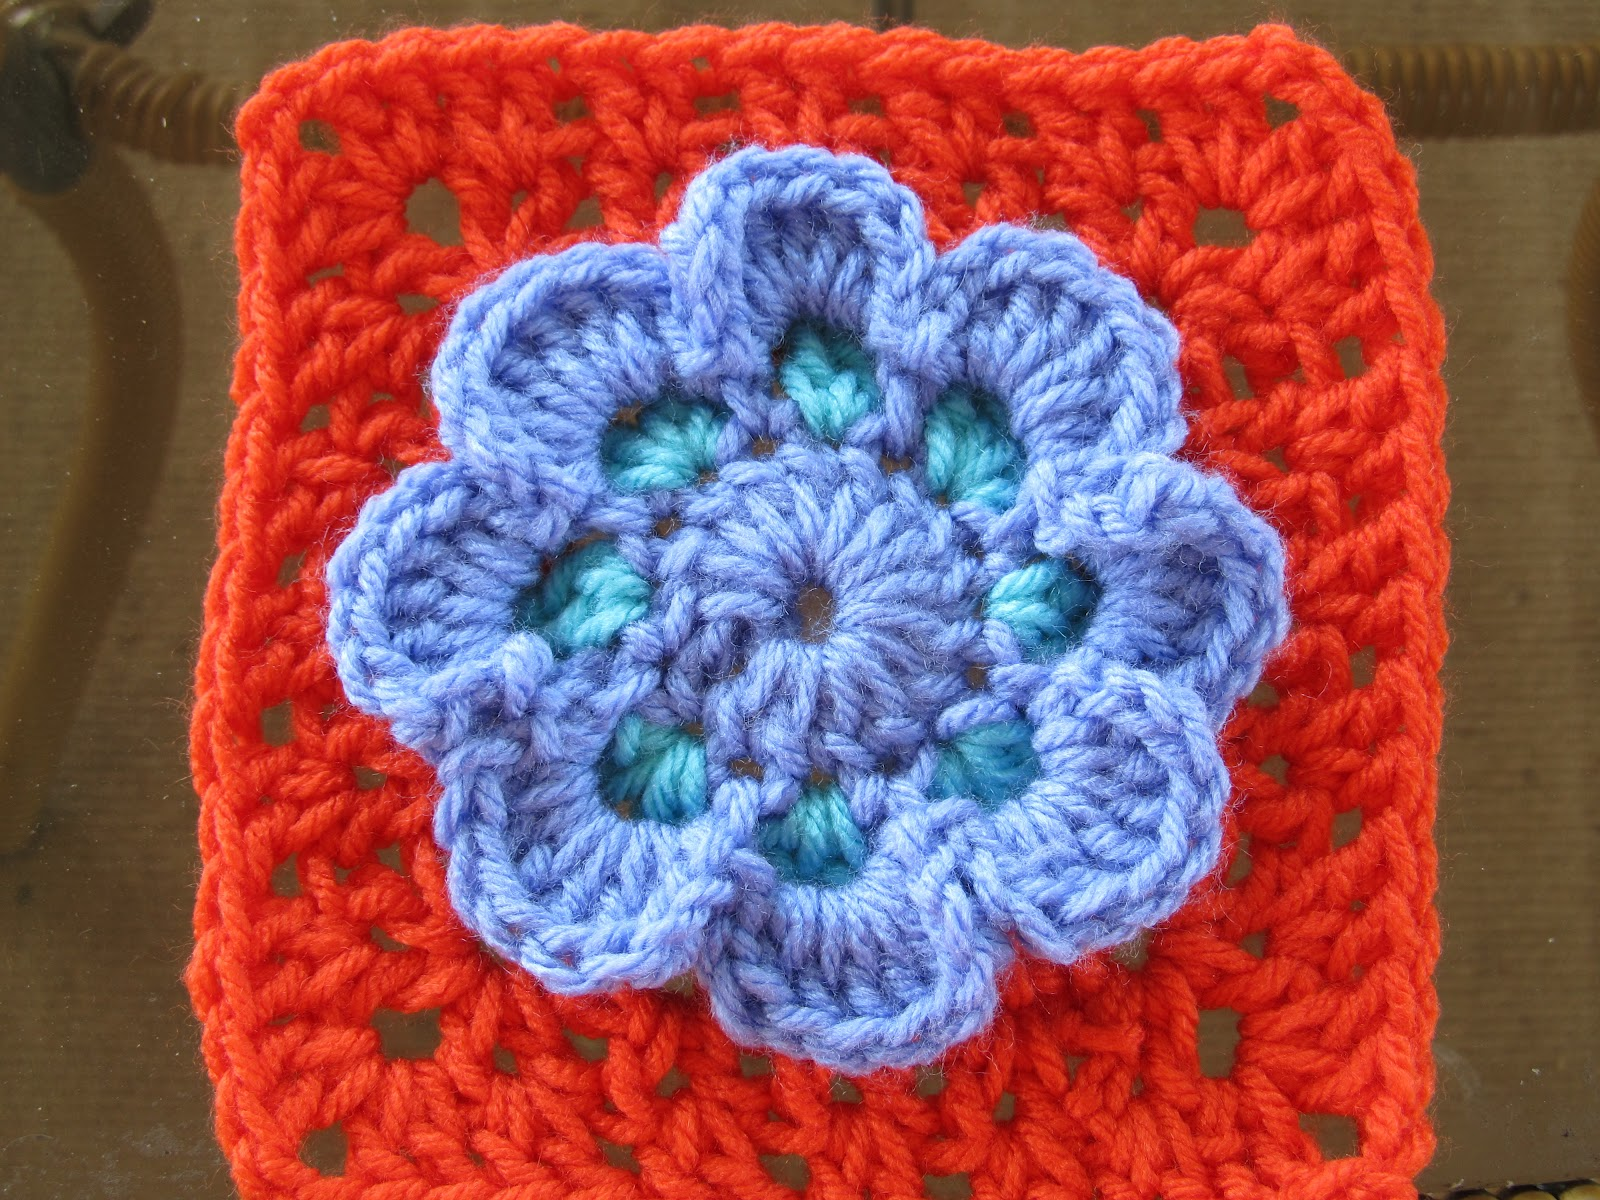 SmoothFox Crochet and Knit: Free SmoothFox\'s - Viola\'s Garden Party